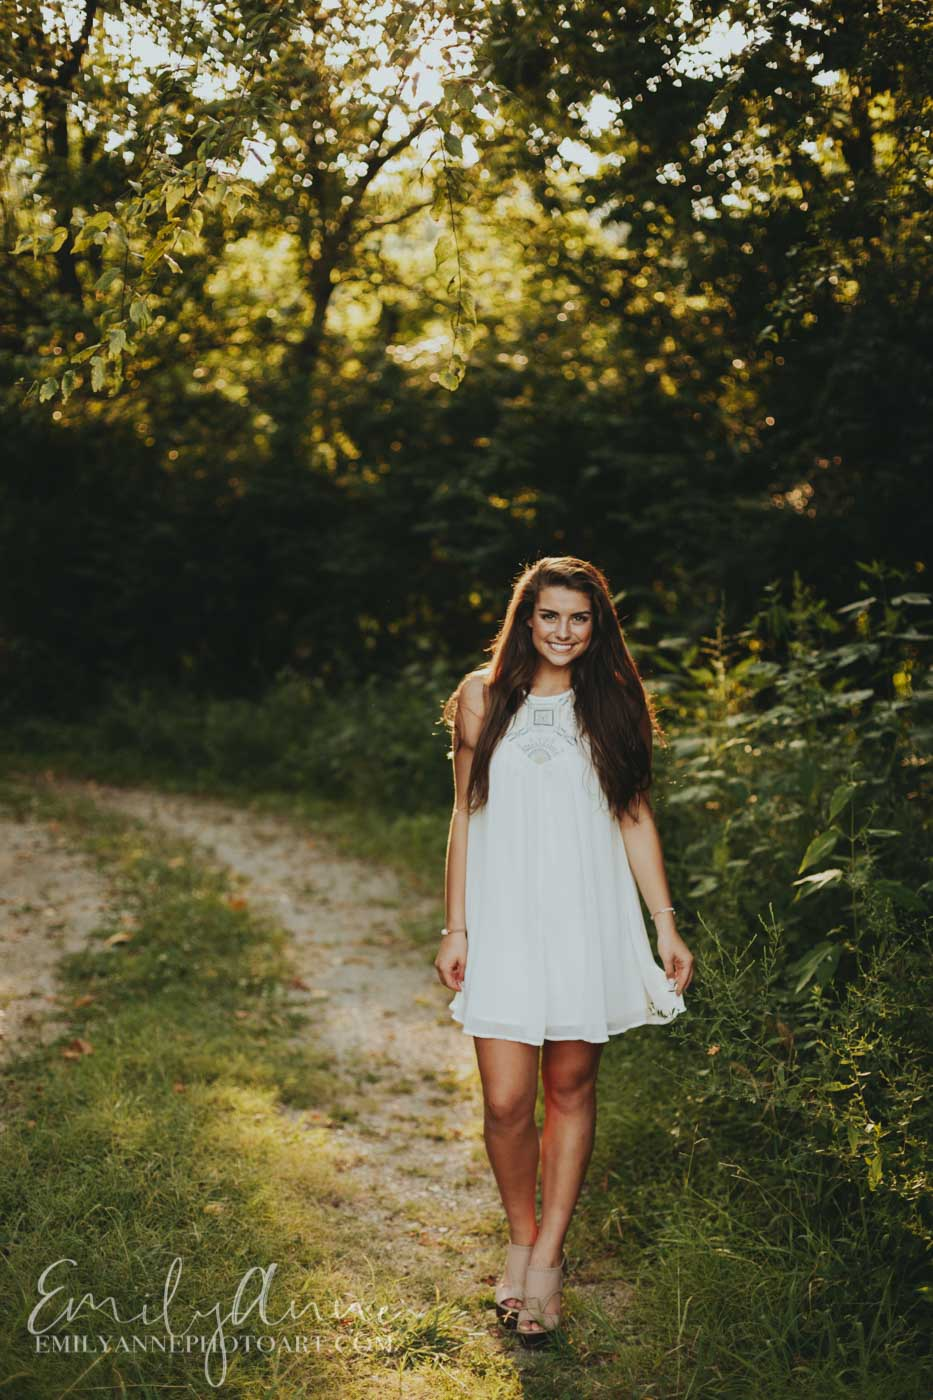 beautiful photos in nature Pinkerton park Emily Anne photo art Nashville Atlanta photographer